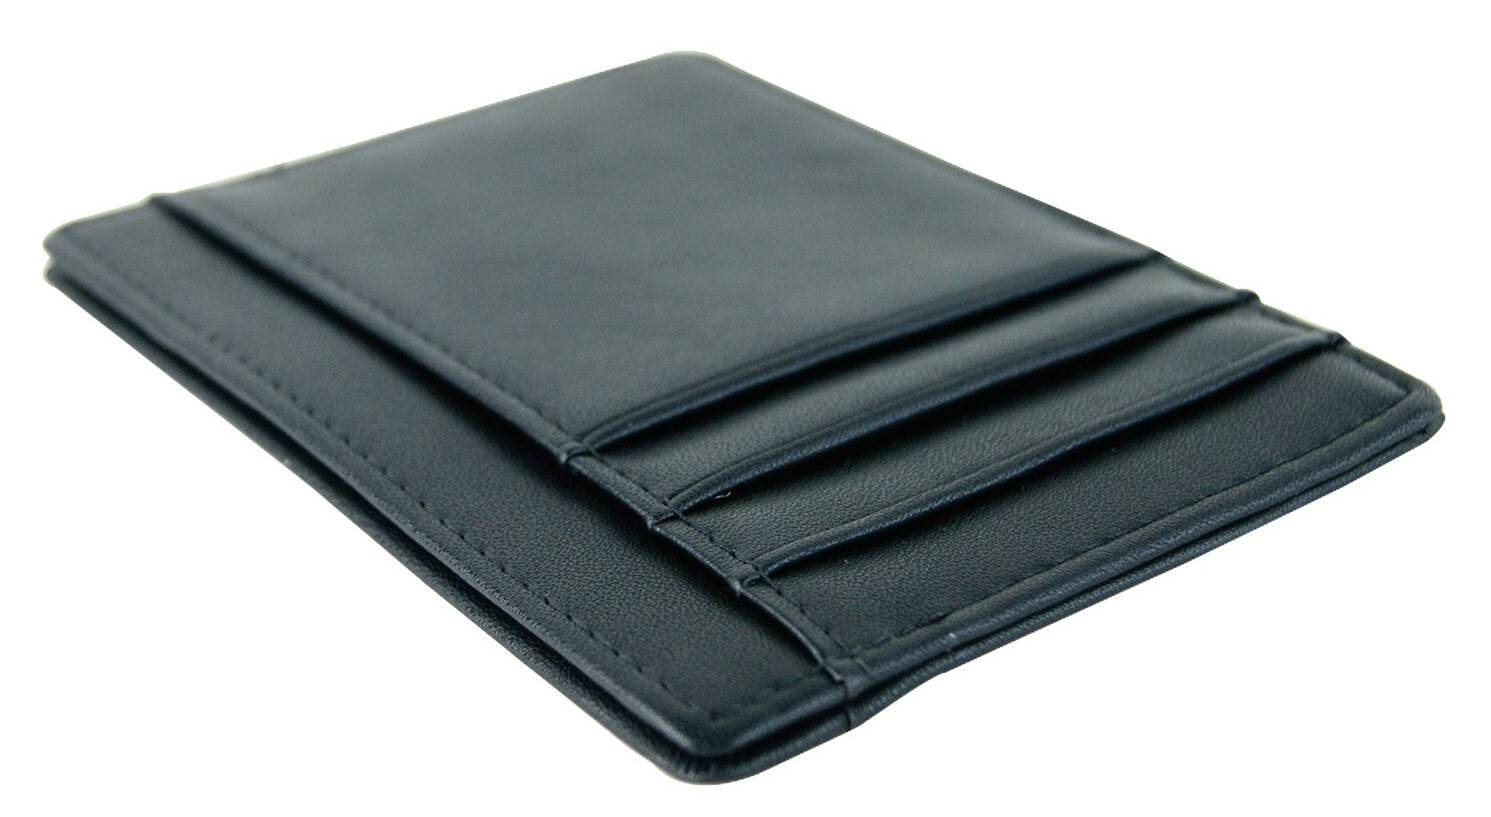 Minimalist leather slim front pocket wallet   Boing Boing 0aa39444f